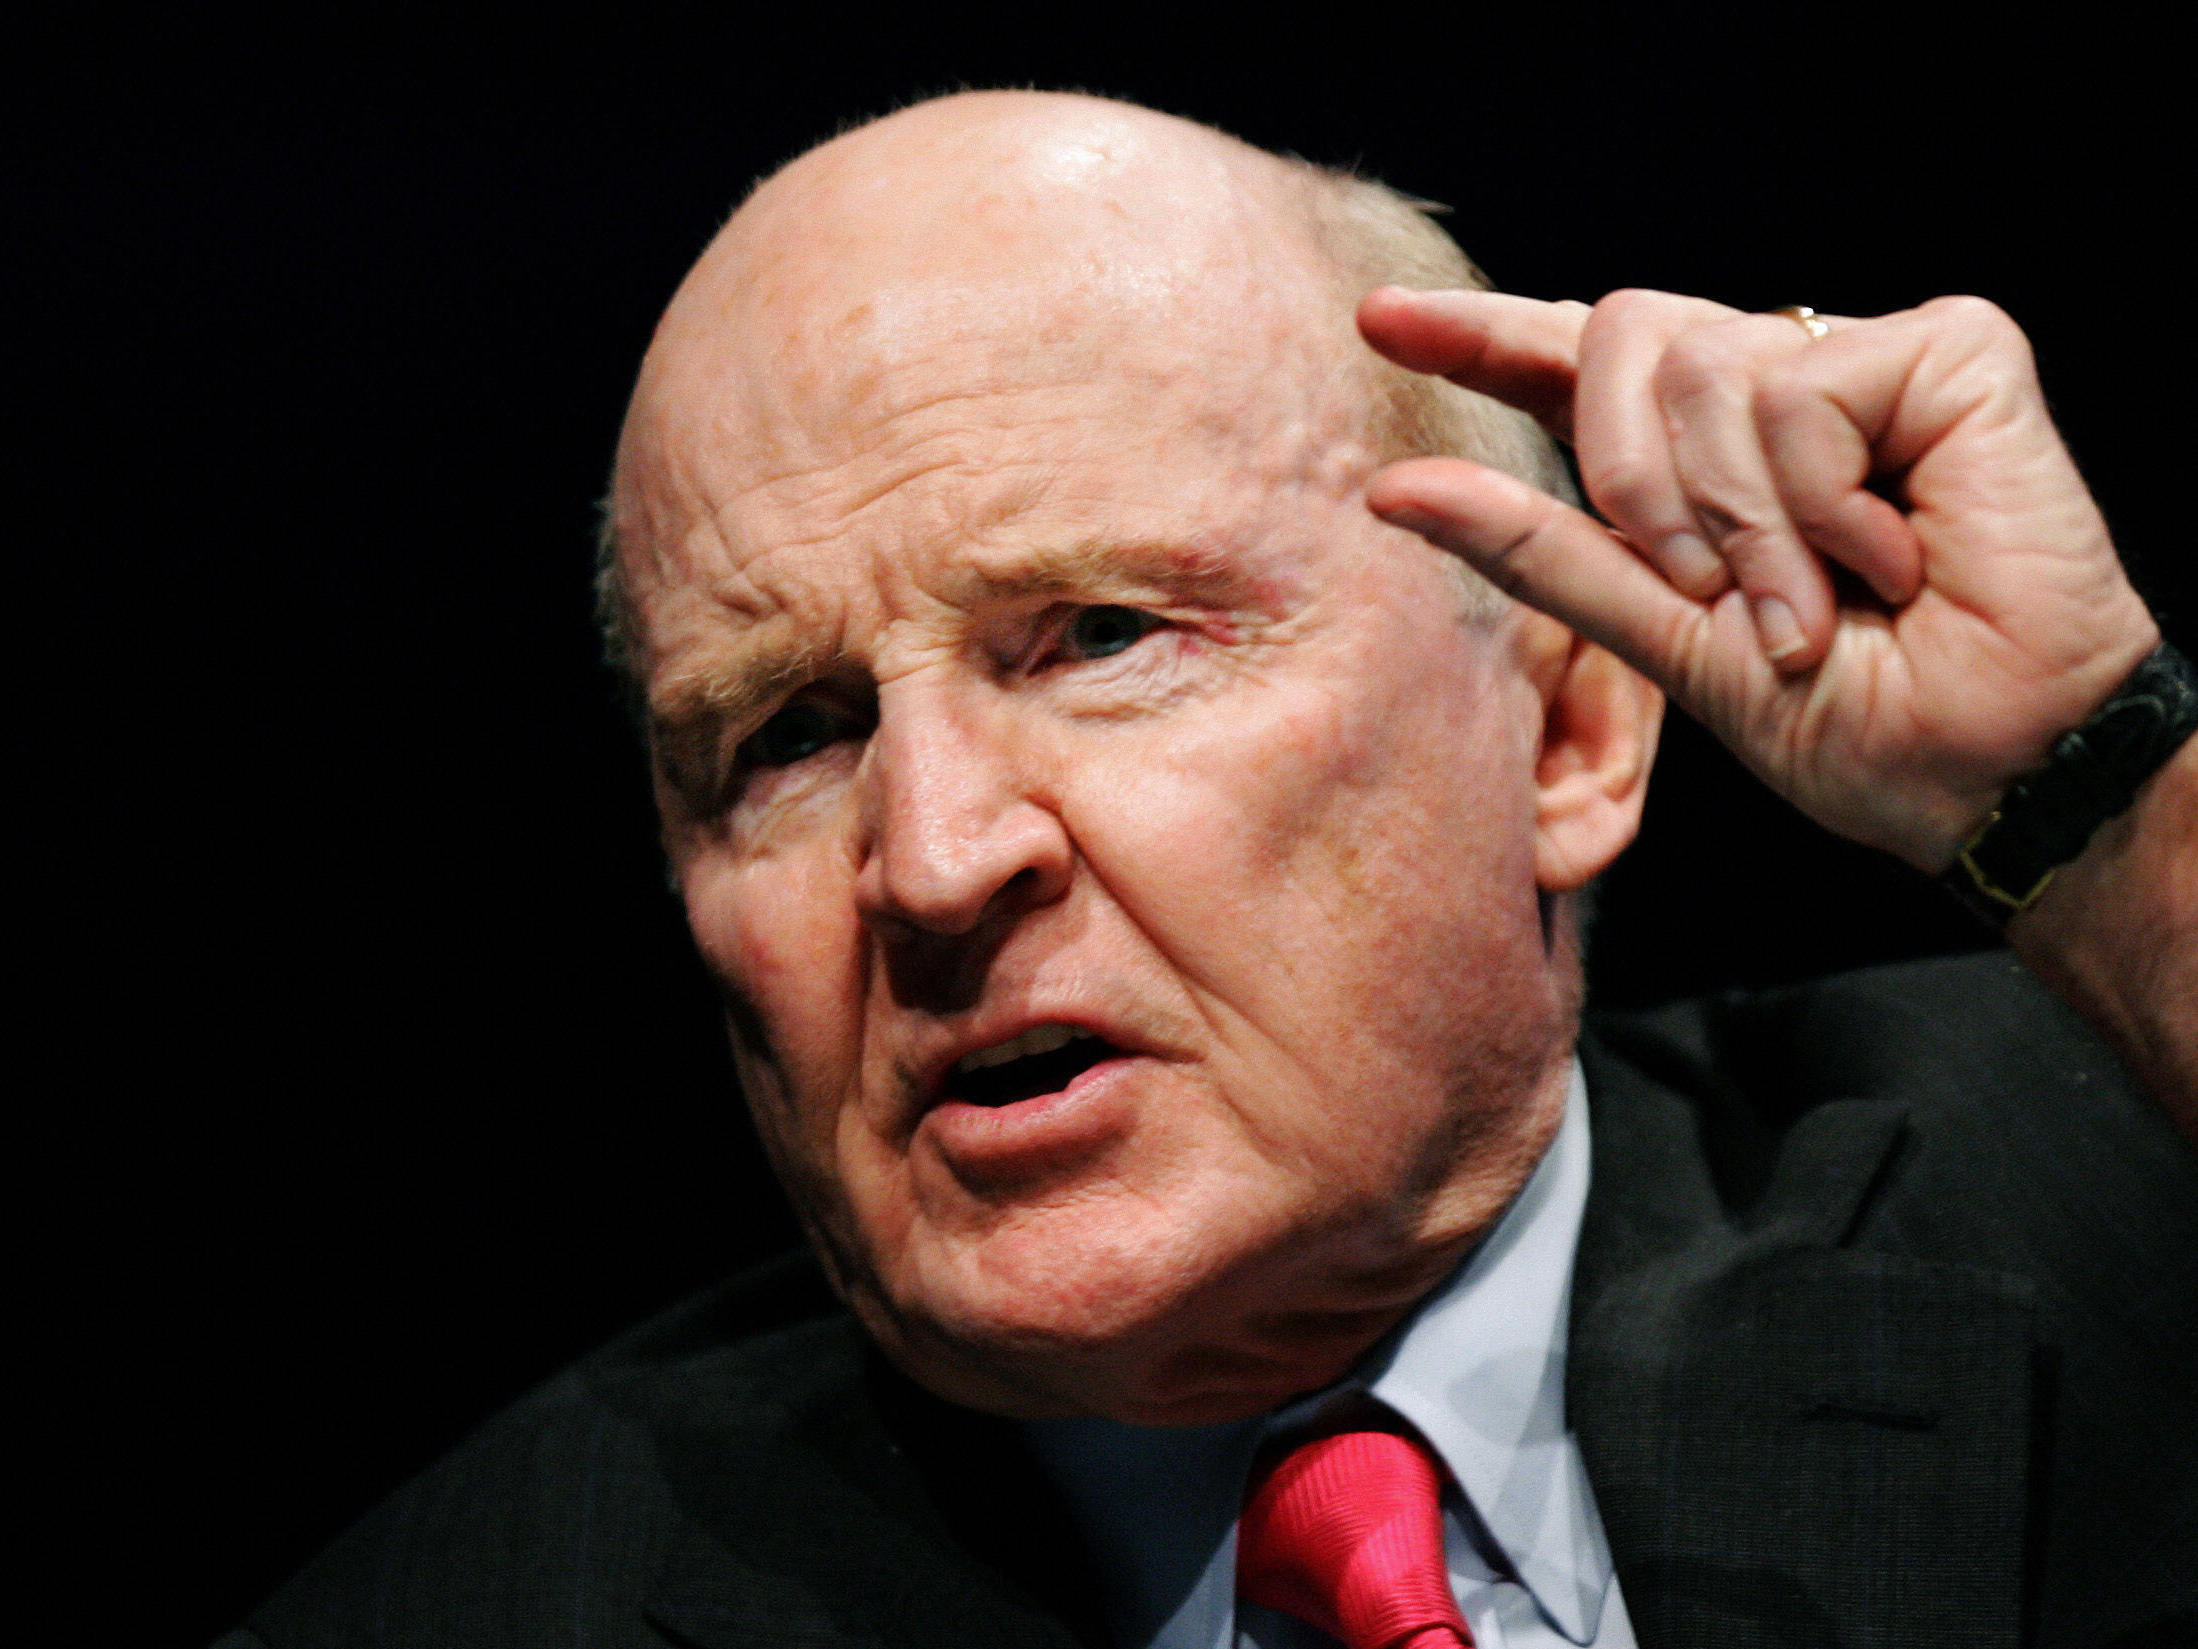 general electric and jack welch John f jack welch jr (born 1935) rose from the ranks of general electric (ge)  to be named the company's youngest ever chief executive officer in 1981.